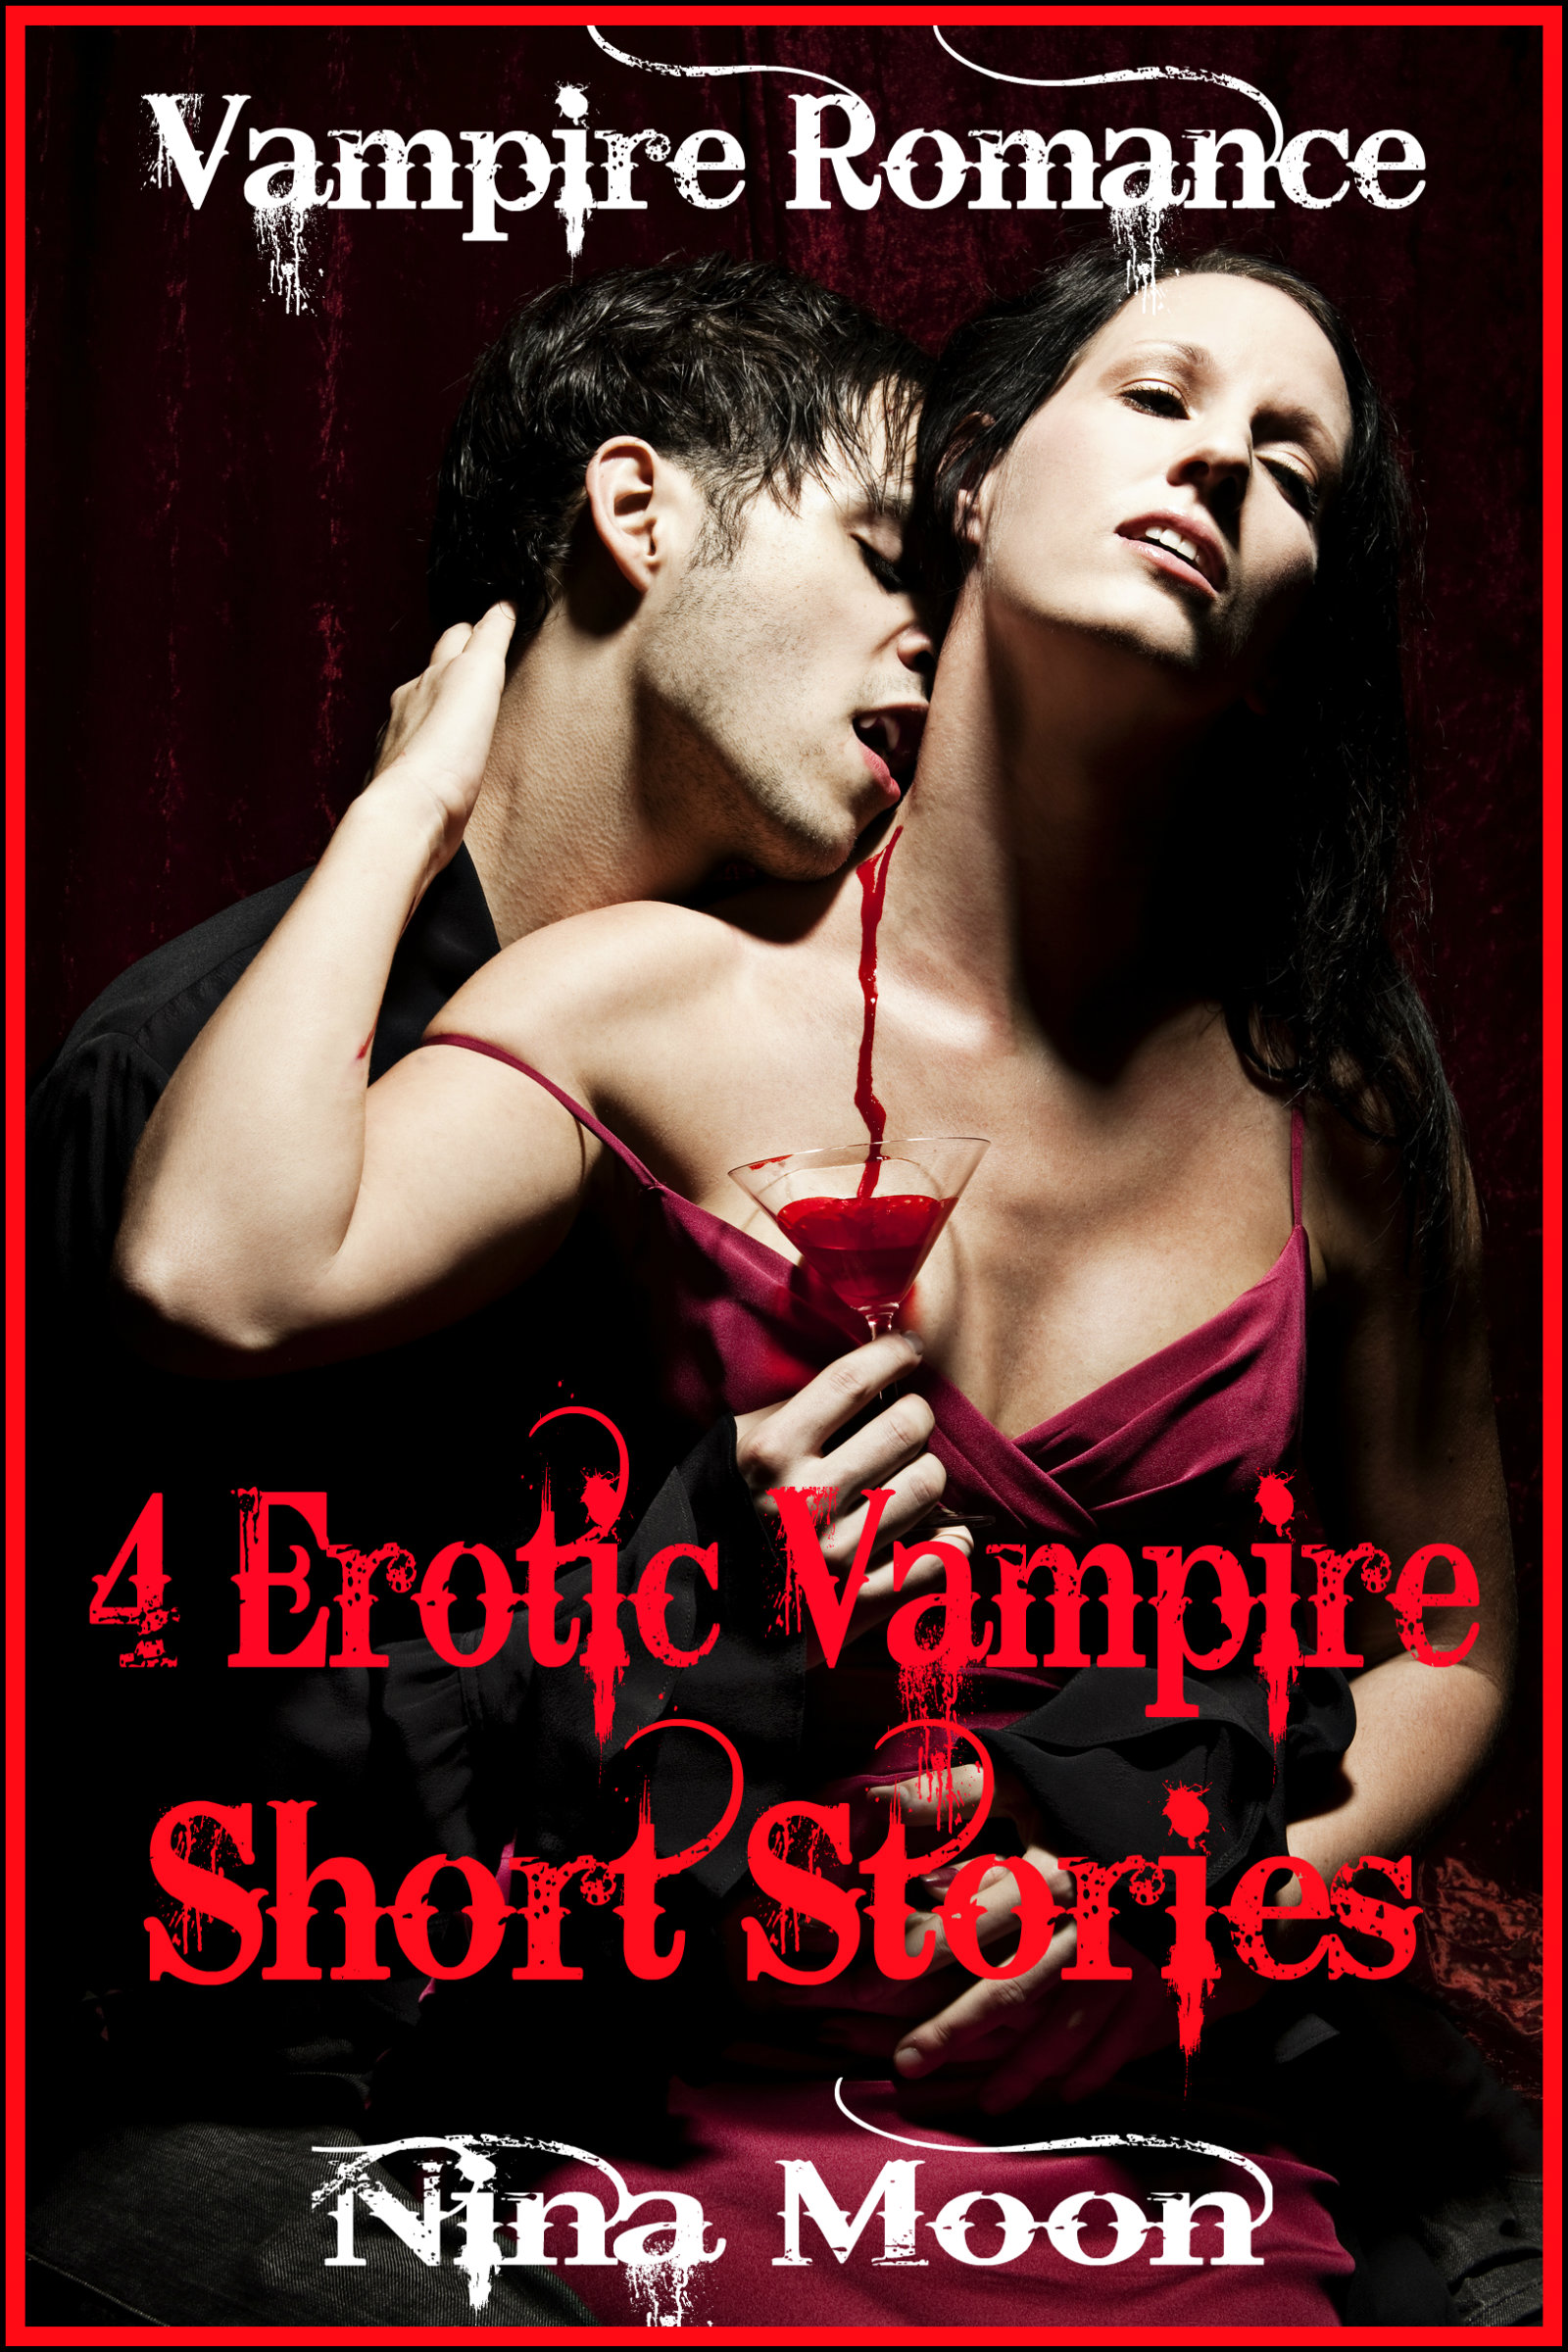 Vampire erotica short stories — photo 10